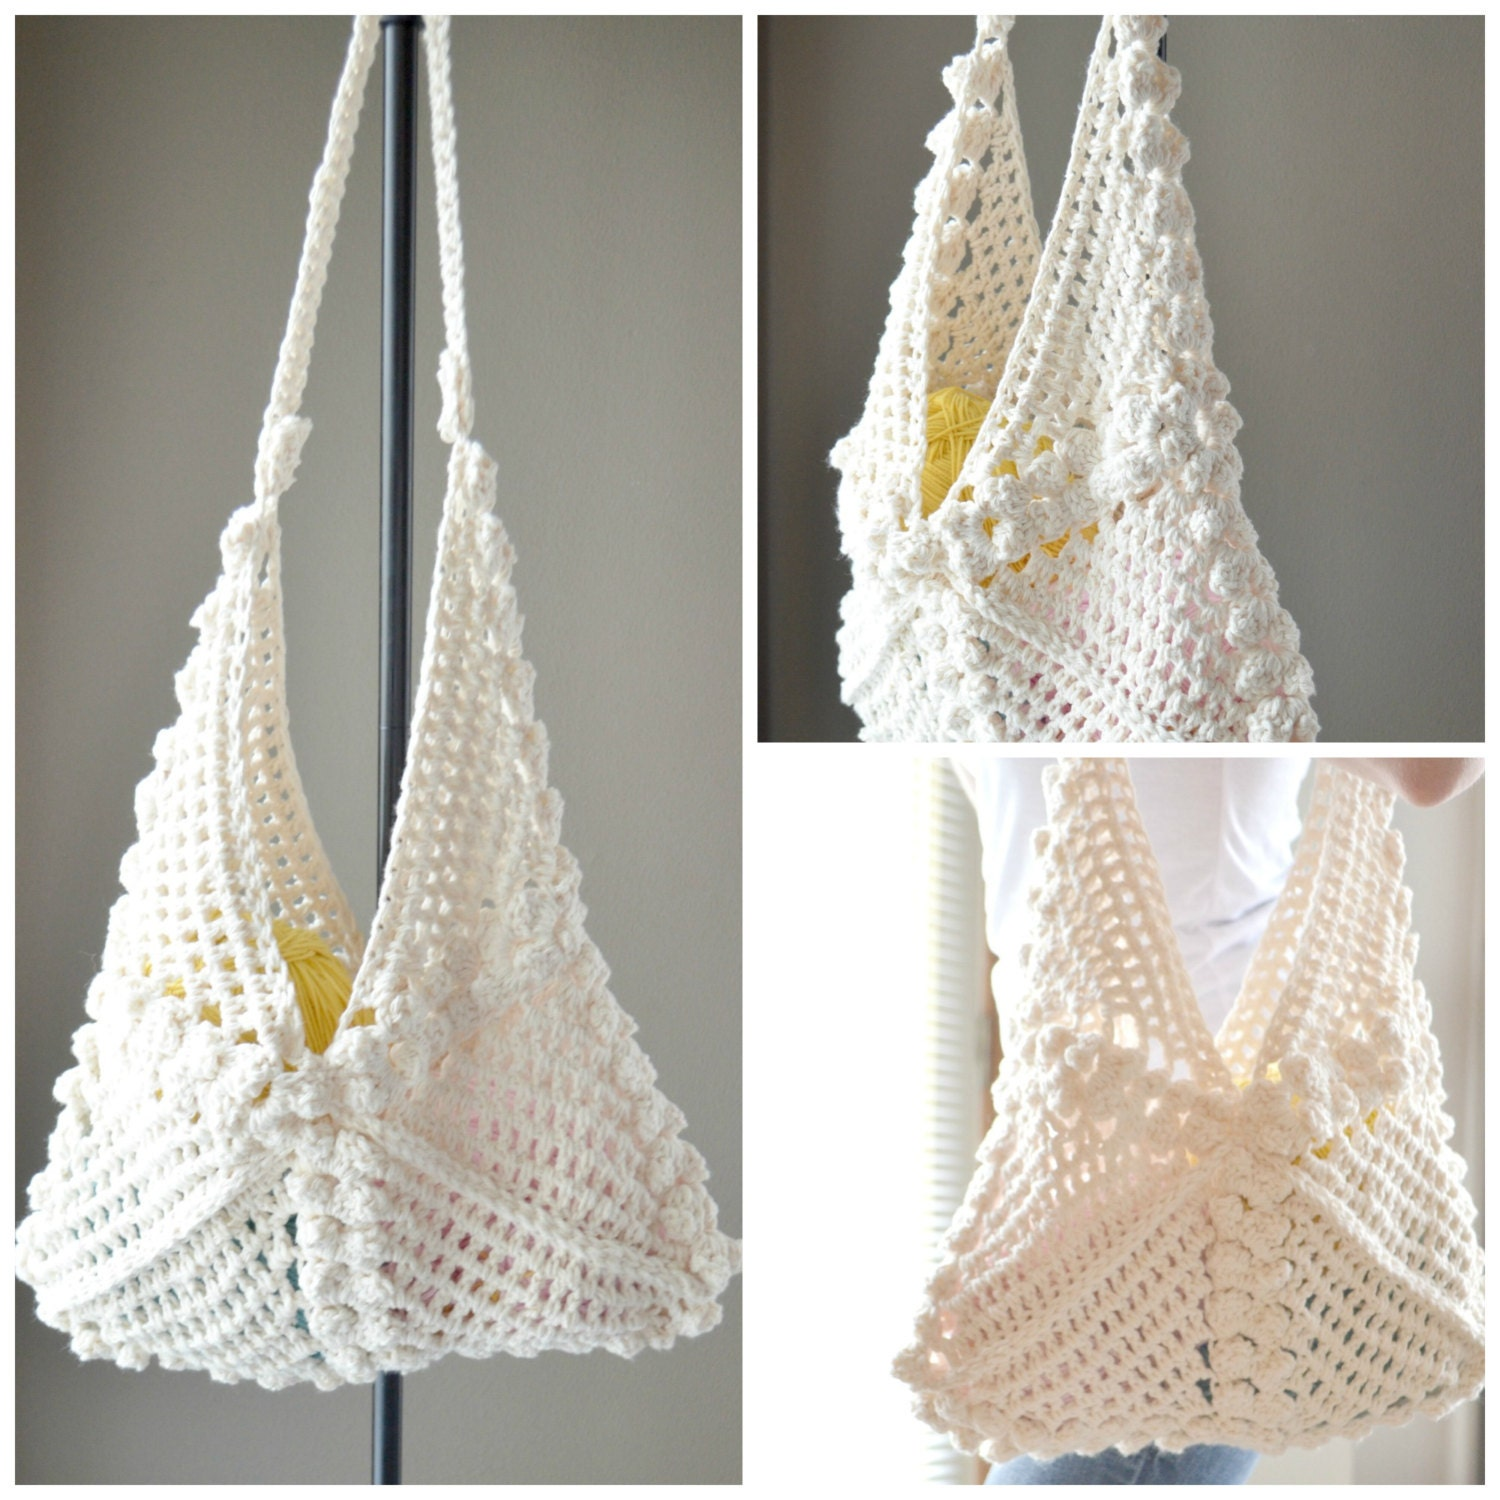 Crochet Hobo Bag Pattern : CROCHET PATTERN Hanna Hobo Bag crochet bag by CassJamesDesigns